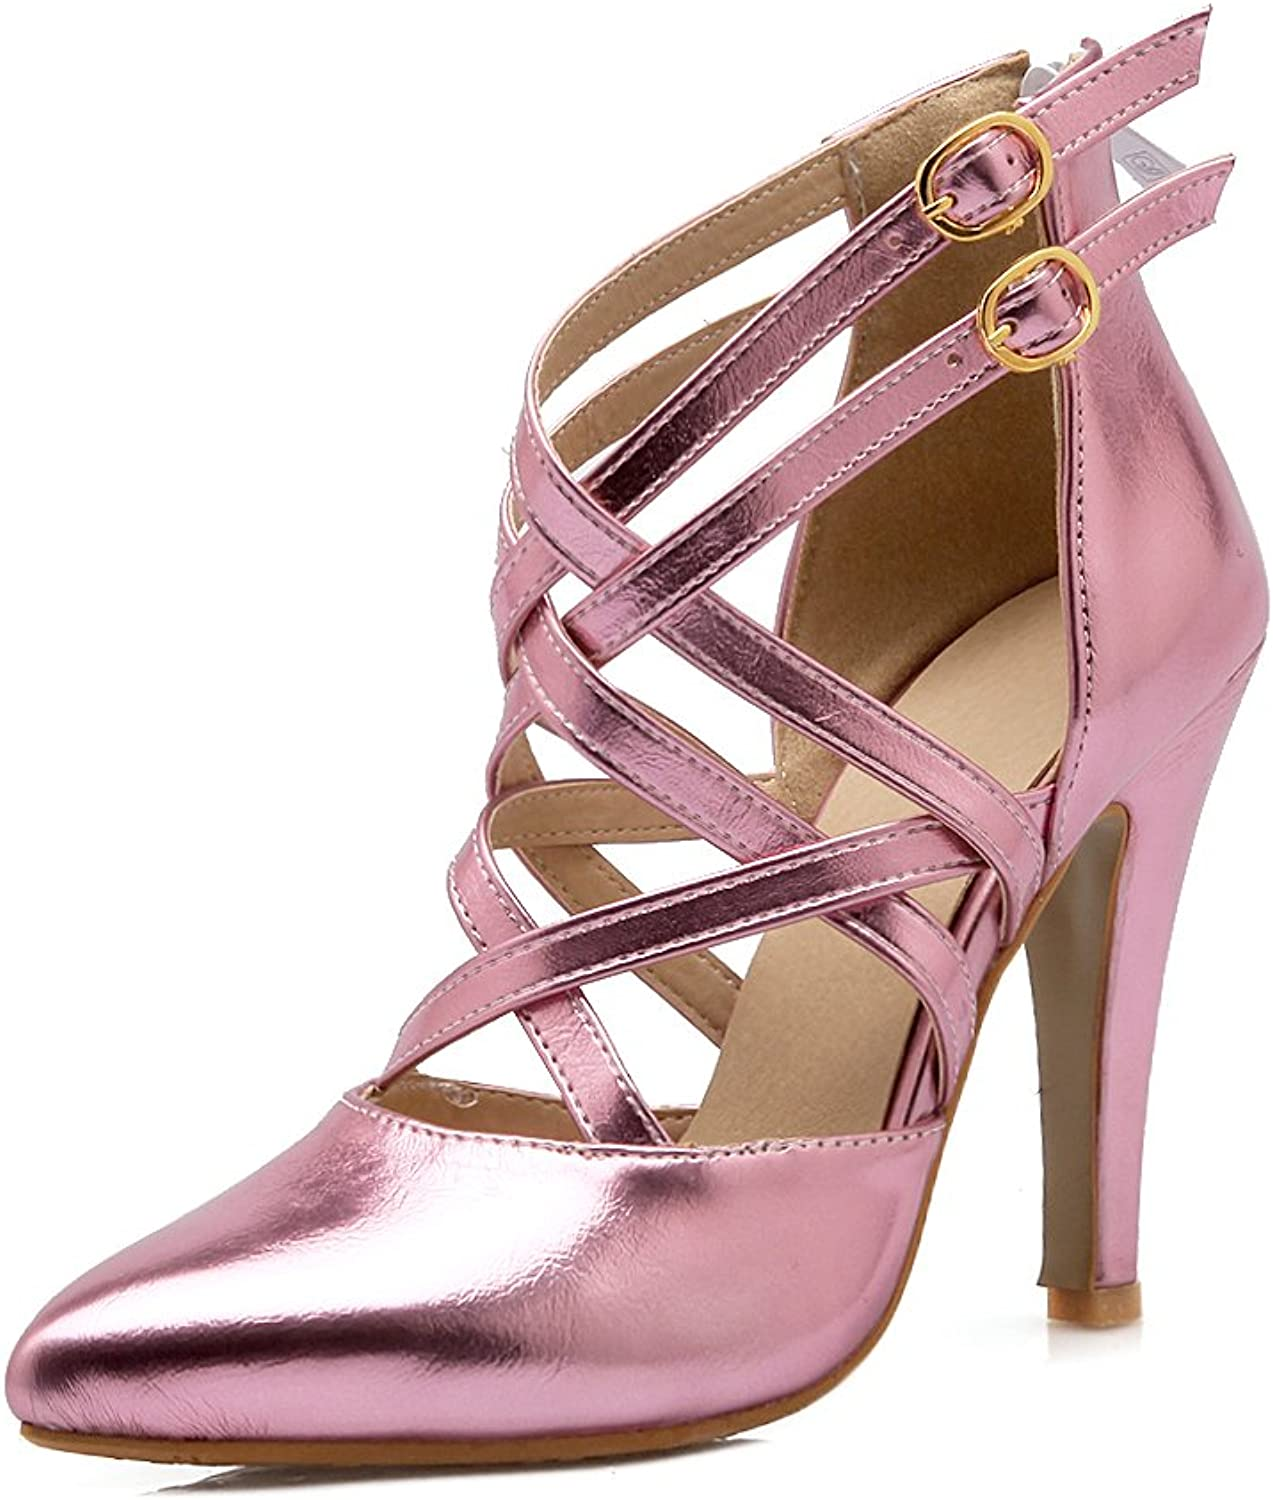 AIWEIYi Womens Pointed toe Cut-outs High Heel Sandals Pink